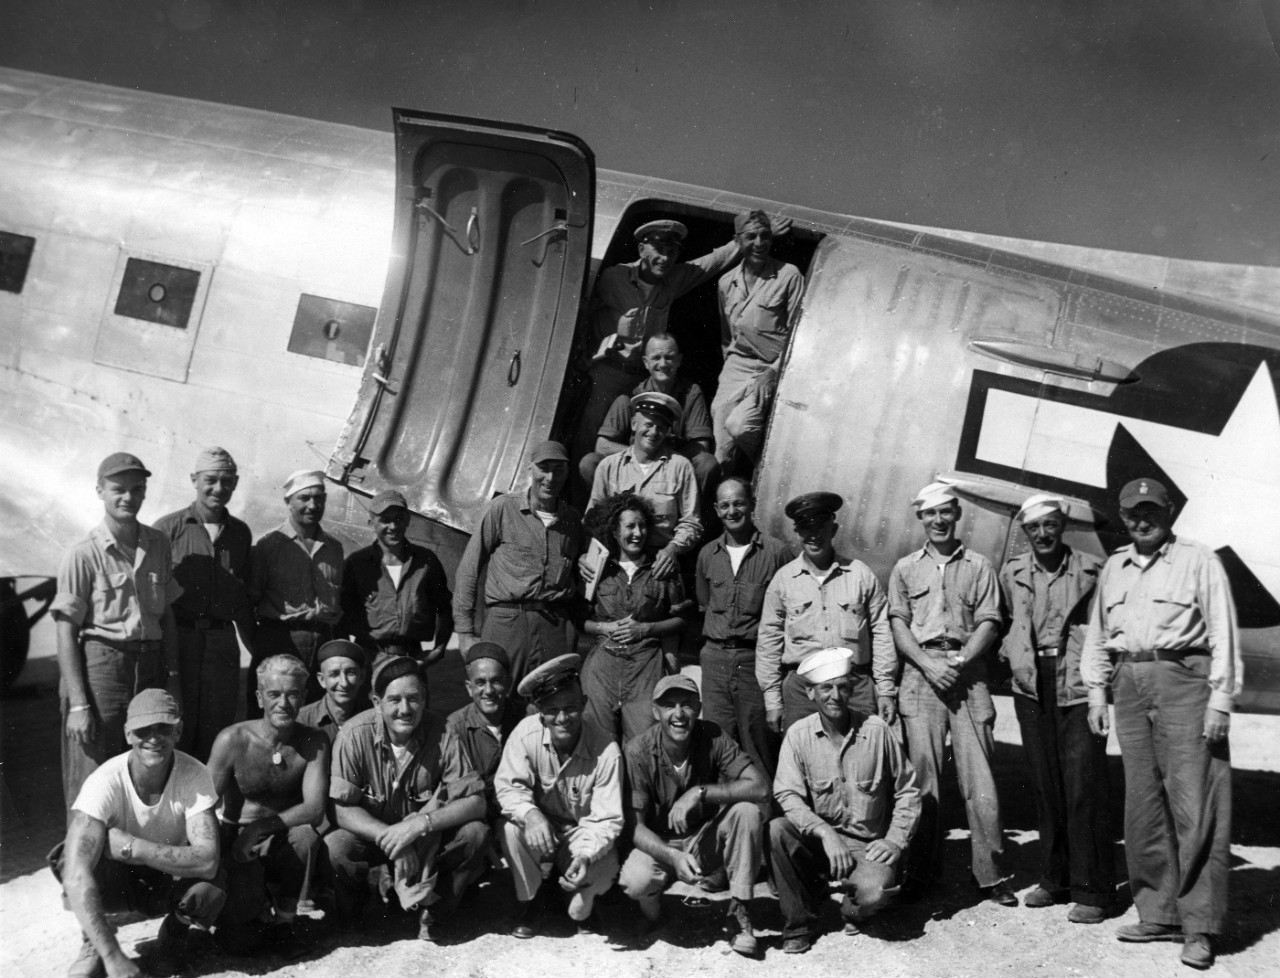 Crewmembers of the Naval Air Transport Service (NATS), WWII